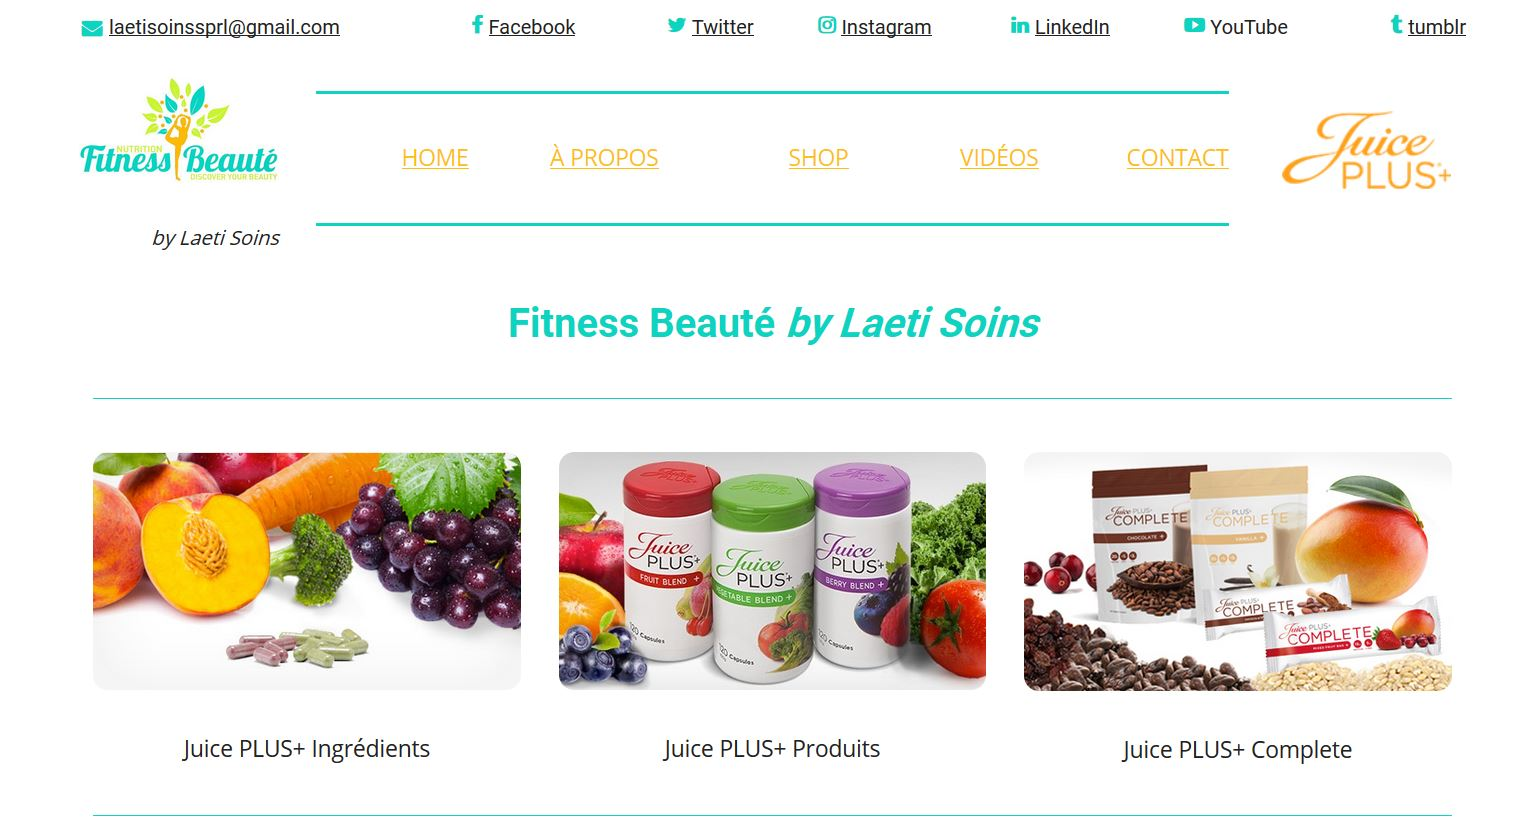 Fitness Beauté by Laeti Soins